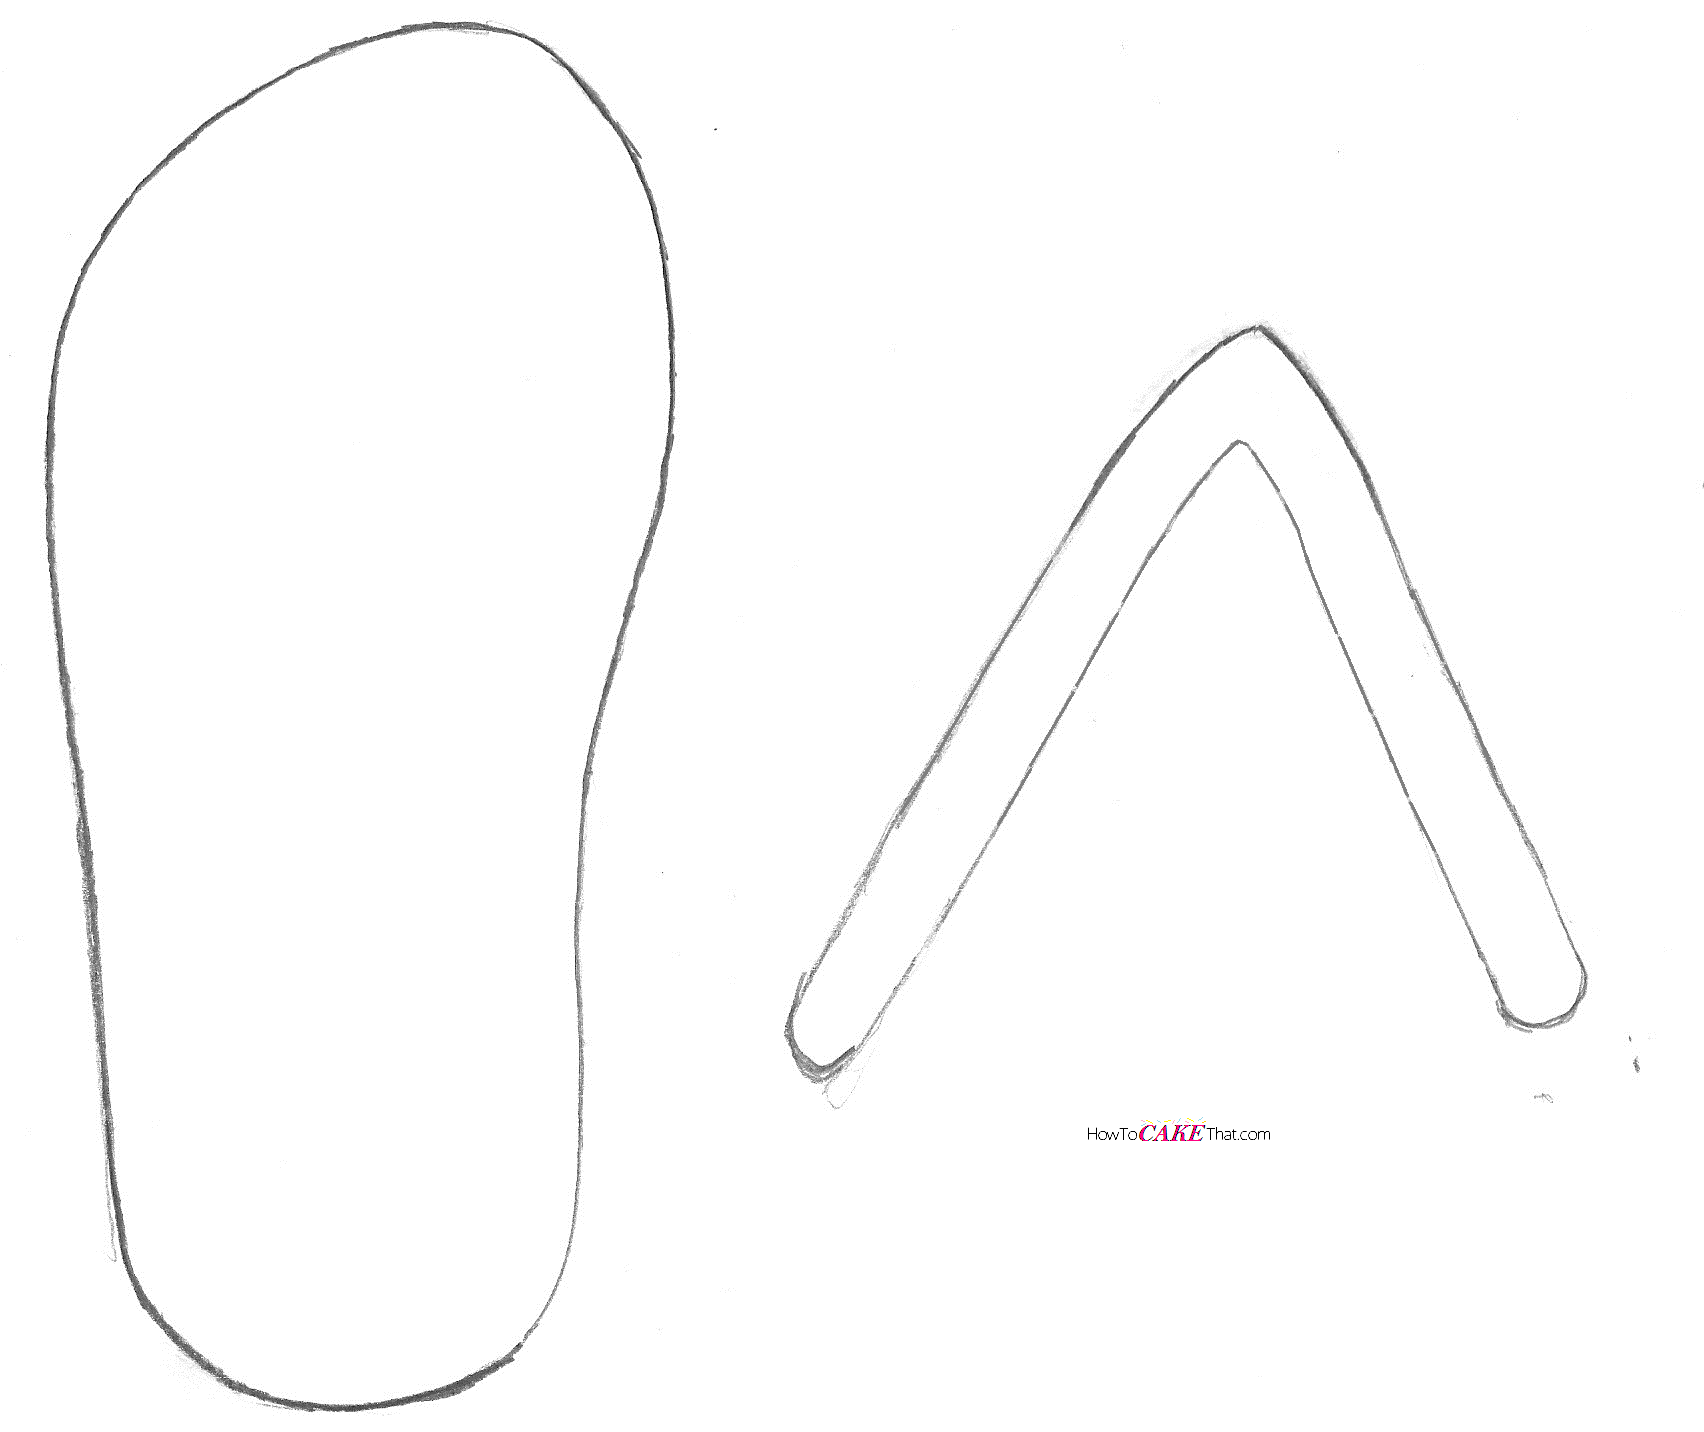 graphic about Flip Flop Template Printable called Transform Flops Template